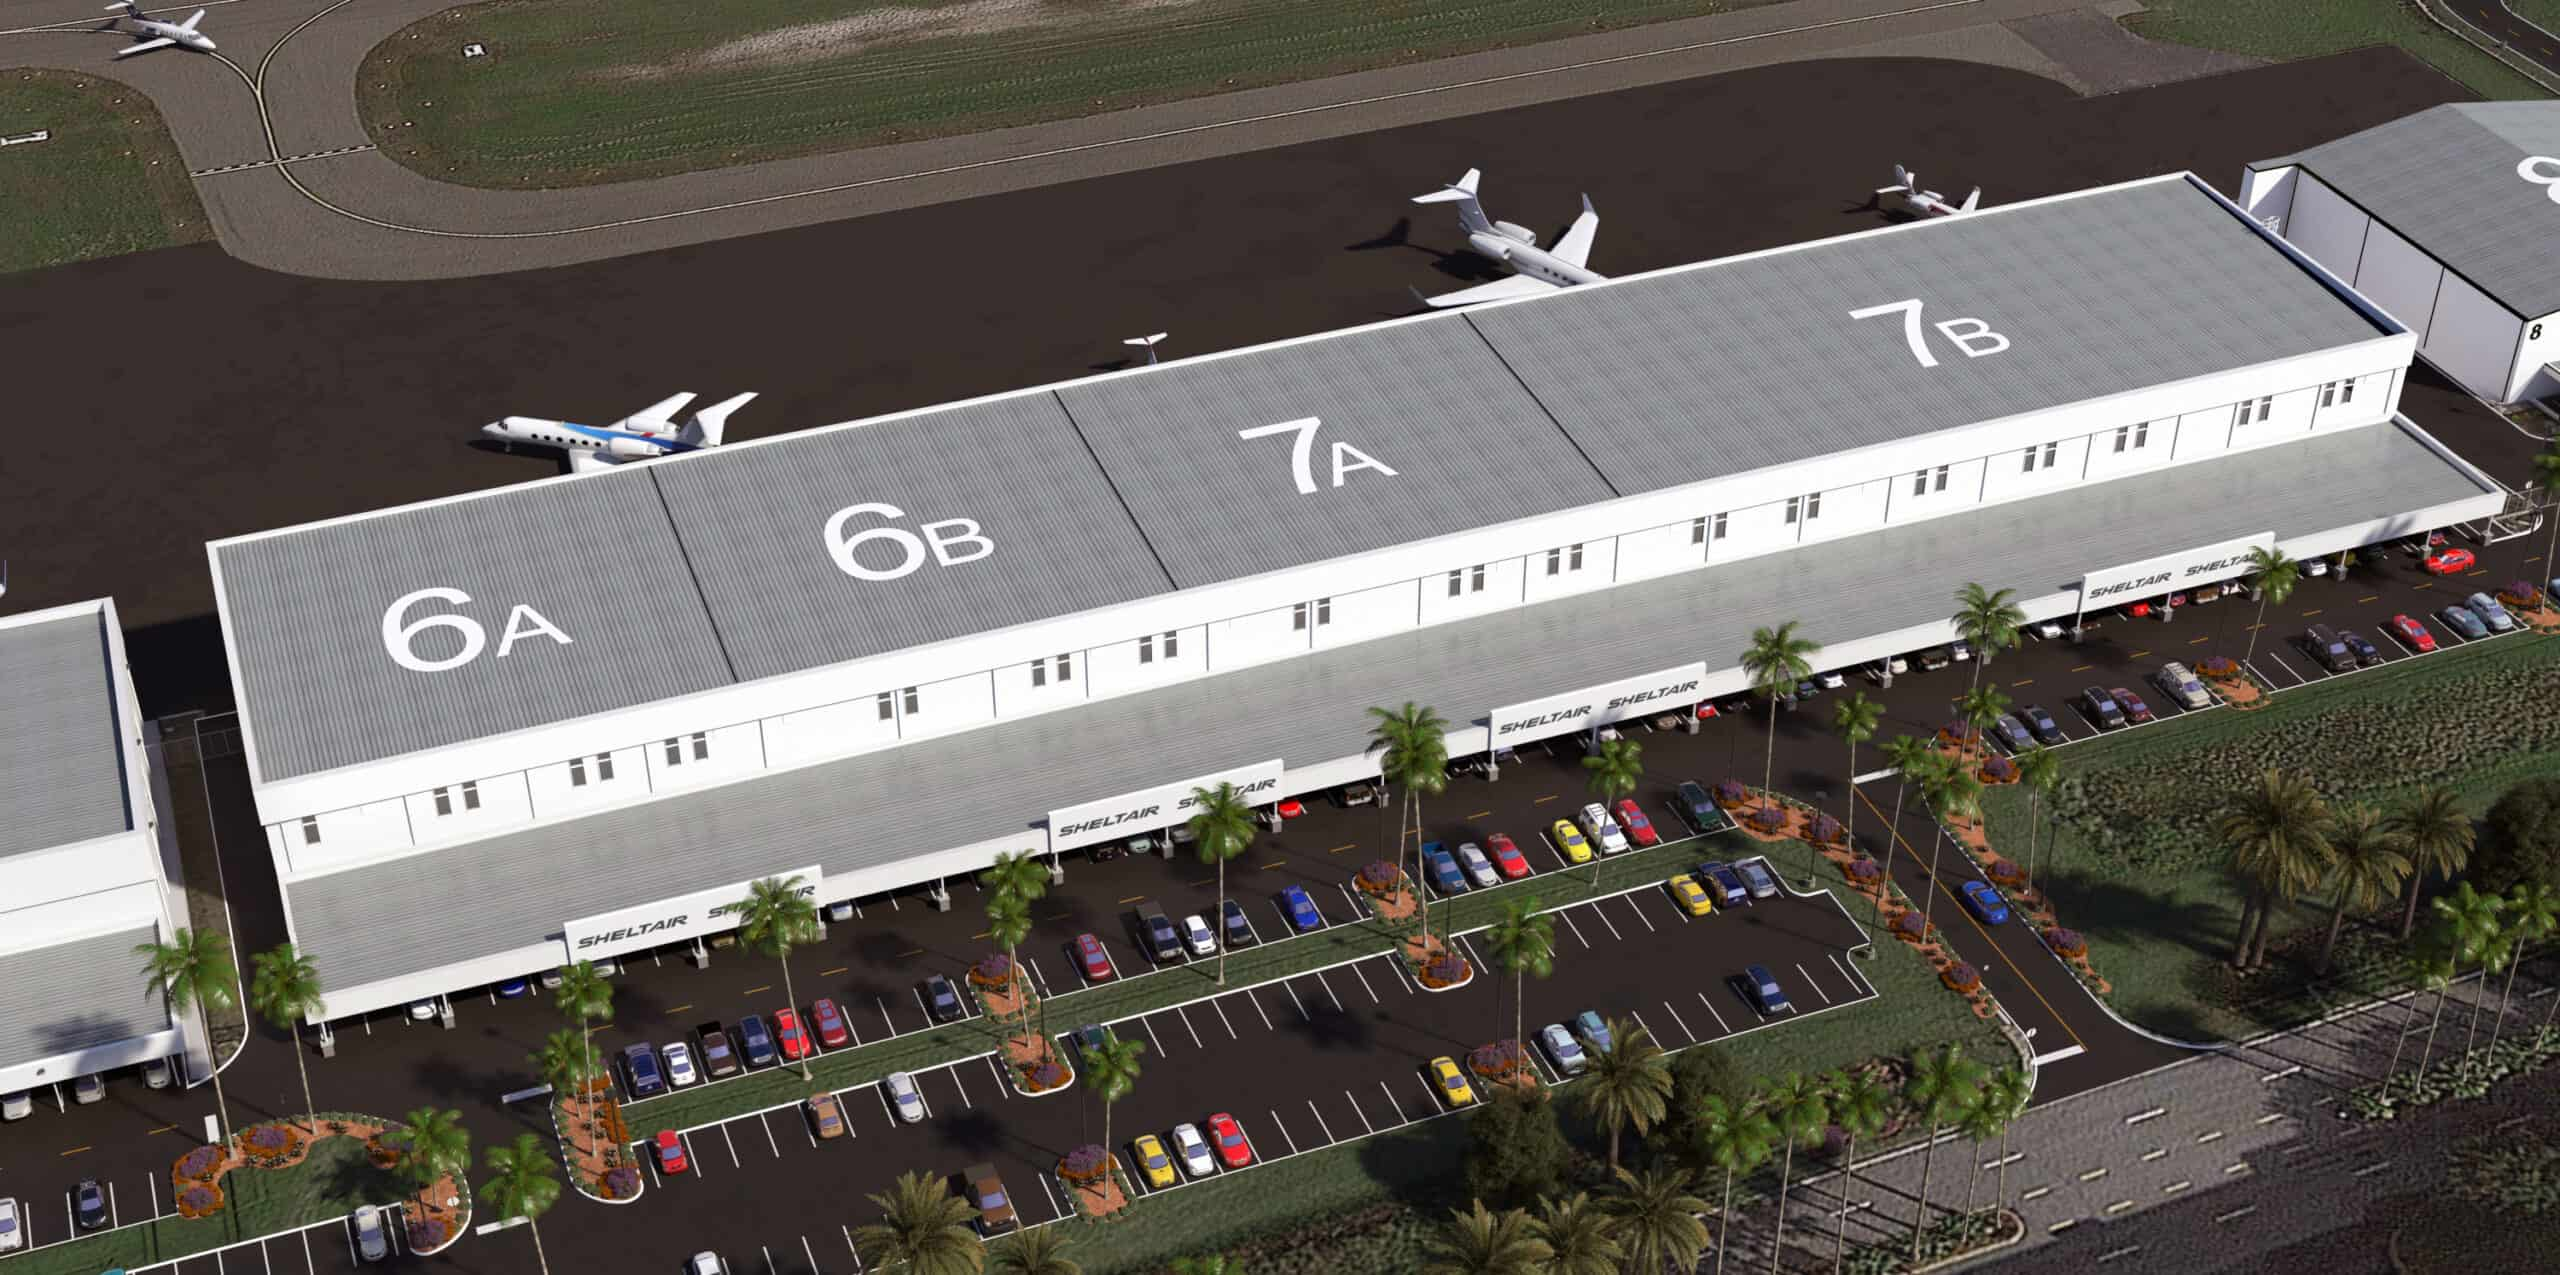 Sheltair to Break Ground on New Hangar and Office Complex at Tampa International Airport